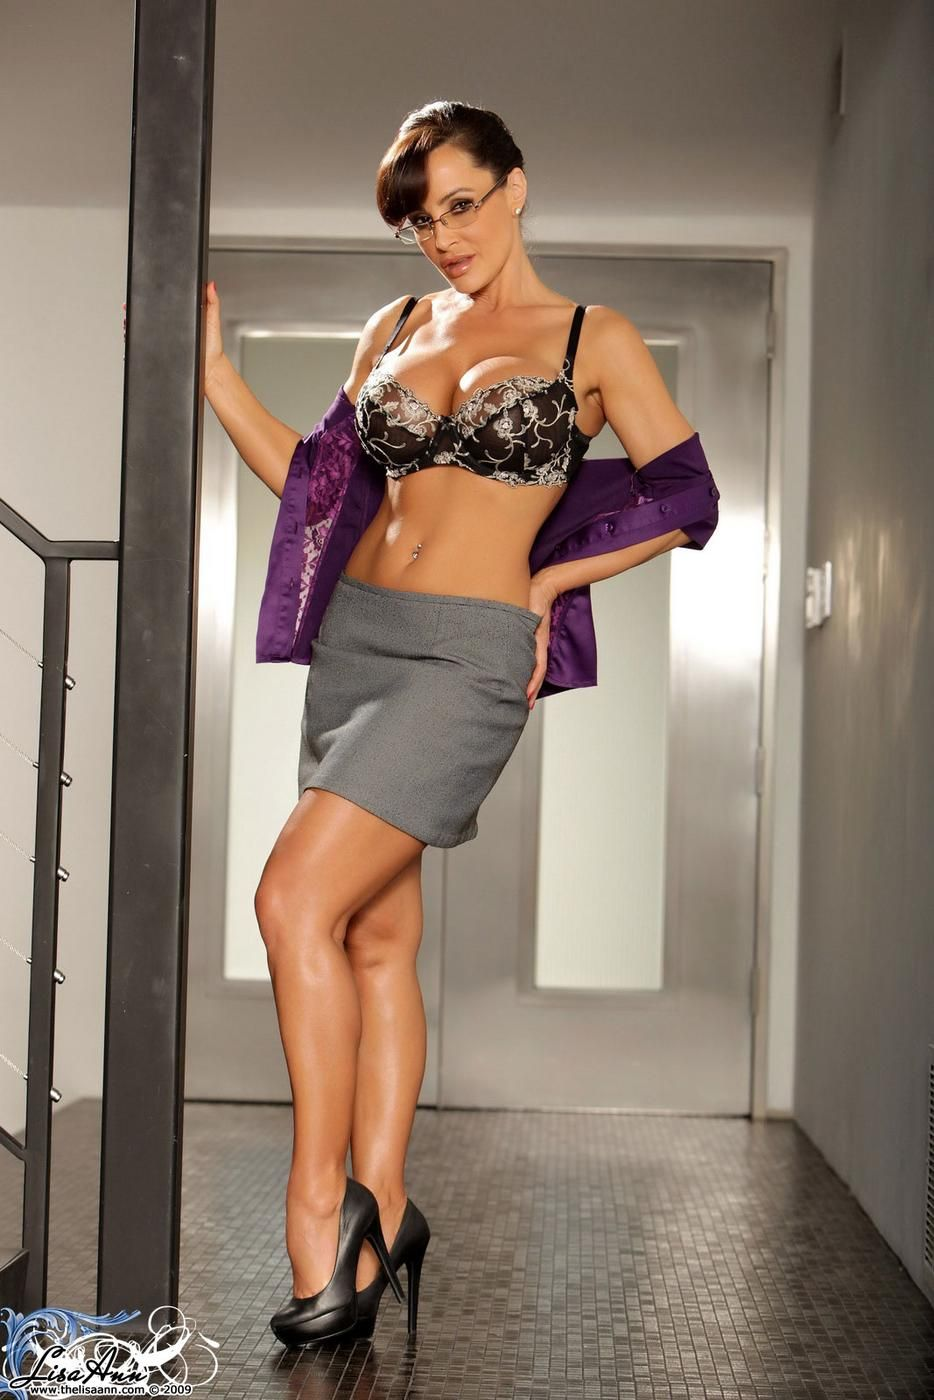 bitely mature women personals One of the most active communities at sexyads is mature dating sexyads is for adult men and women who sexyads was one of the very first adult dating sites.